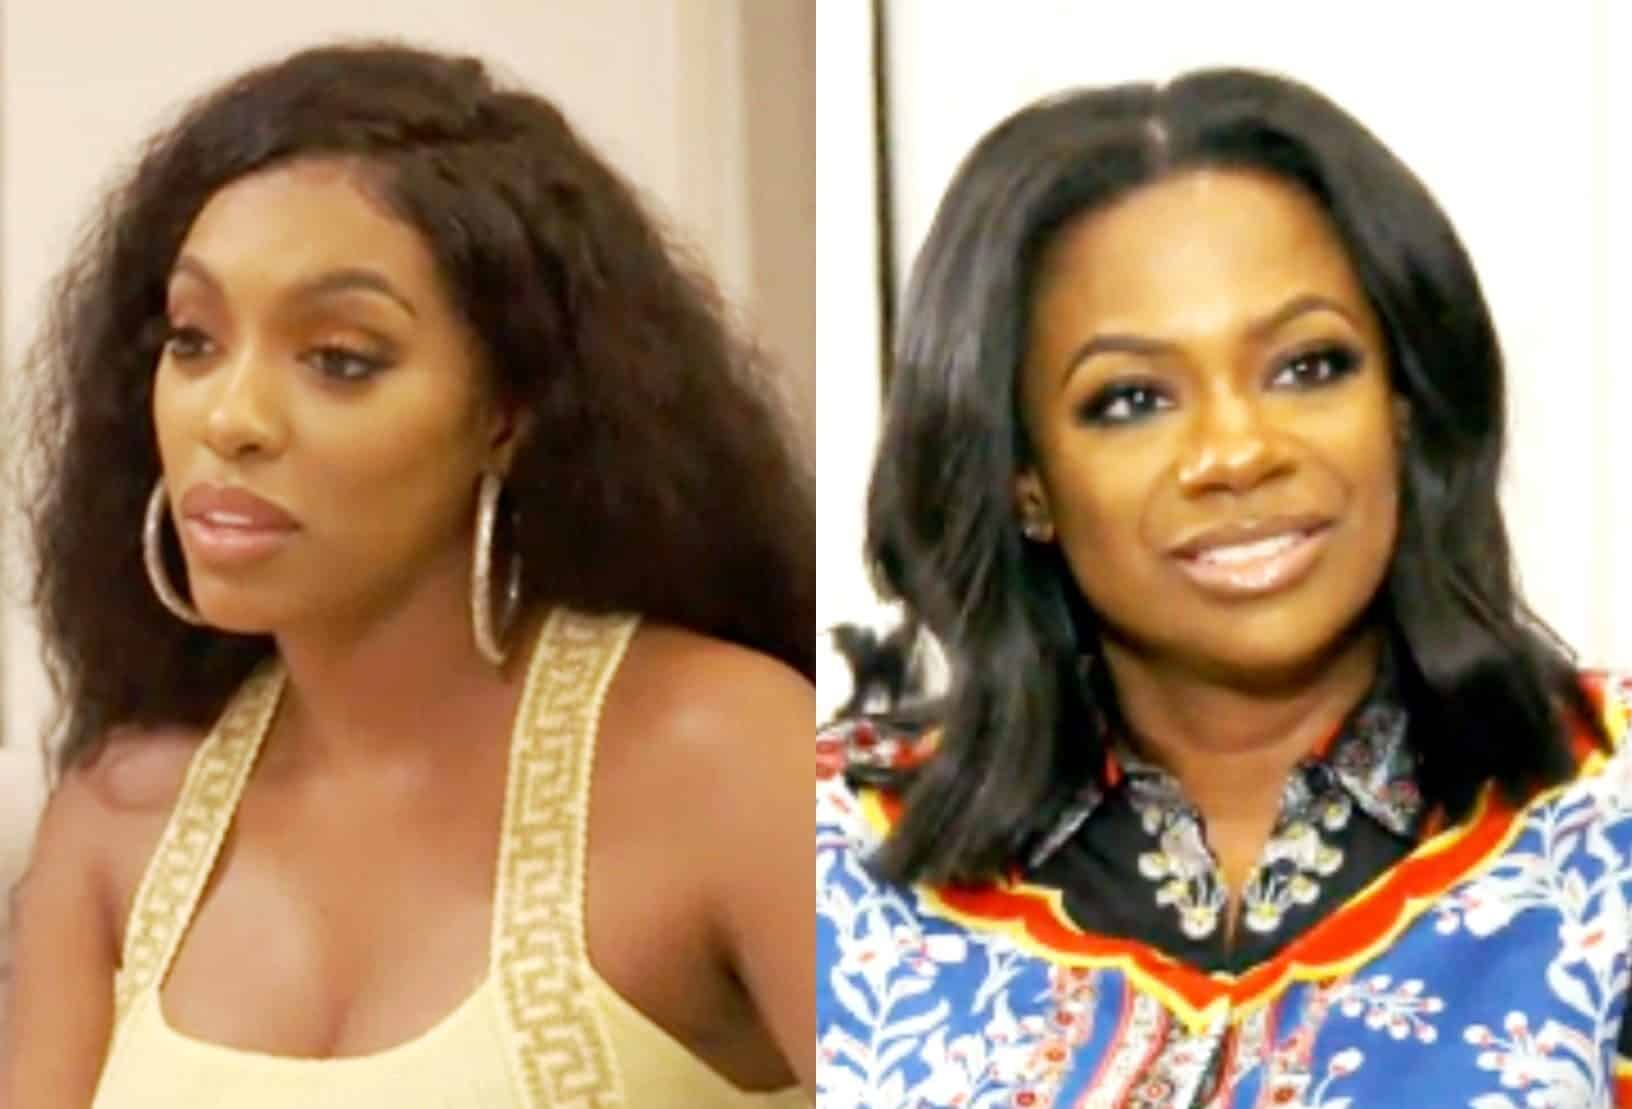 RHOA Recap: Porsha Gets Upset as Dennis Drags His Feet on Wedding Plus Kandi Gets Marriage Counseling for Relationship Troubles